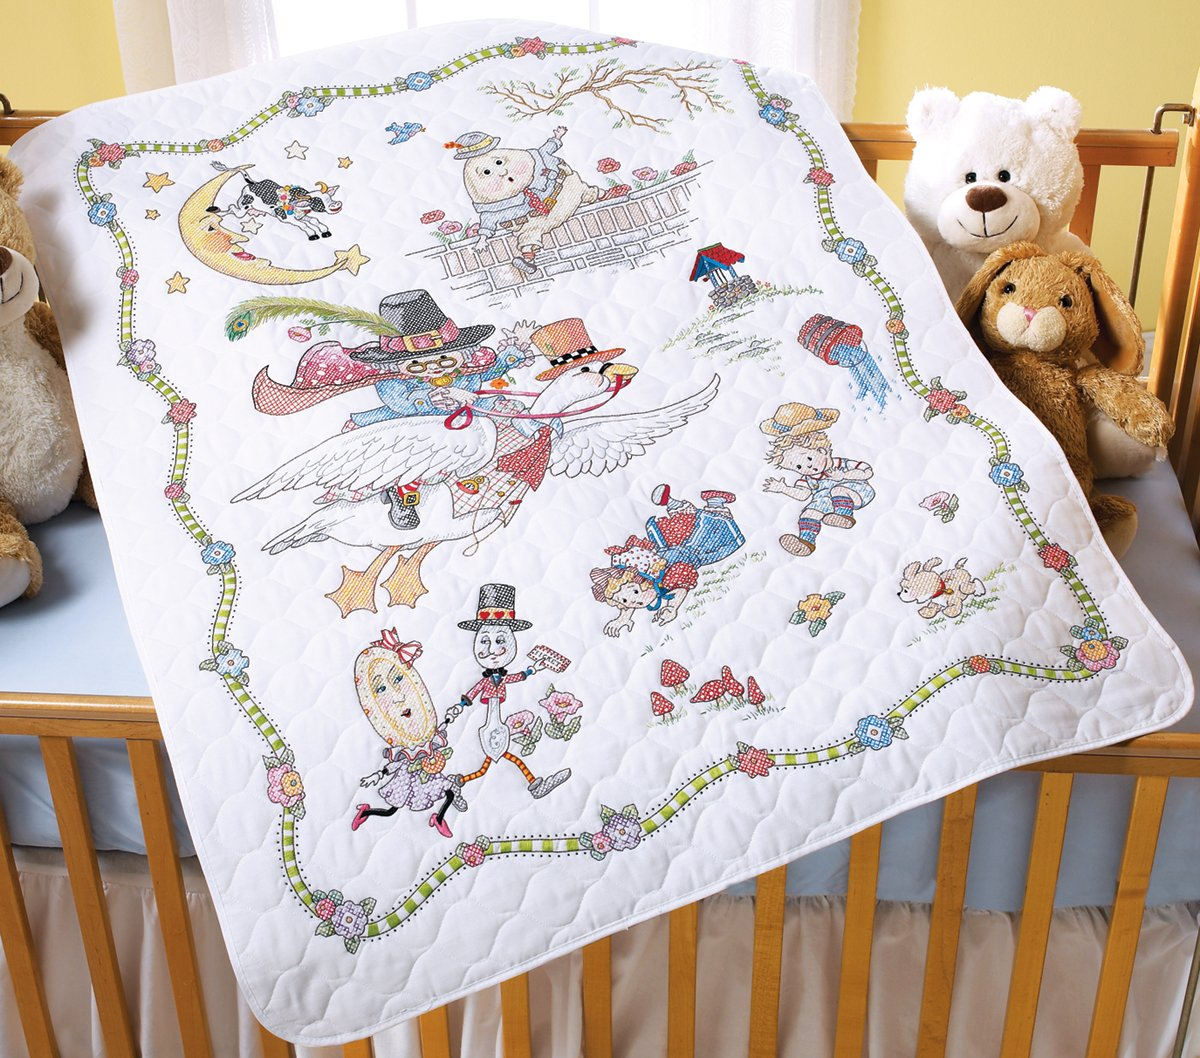 Mary Engelbreit Mother Goose Crib Cover Stamped Cross Stitch-34''X43'' by Bucilla